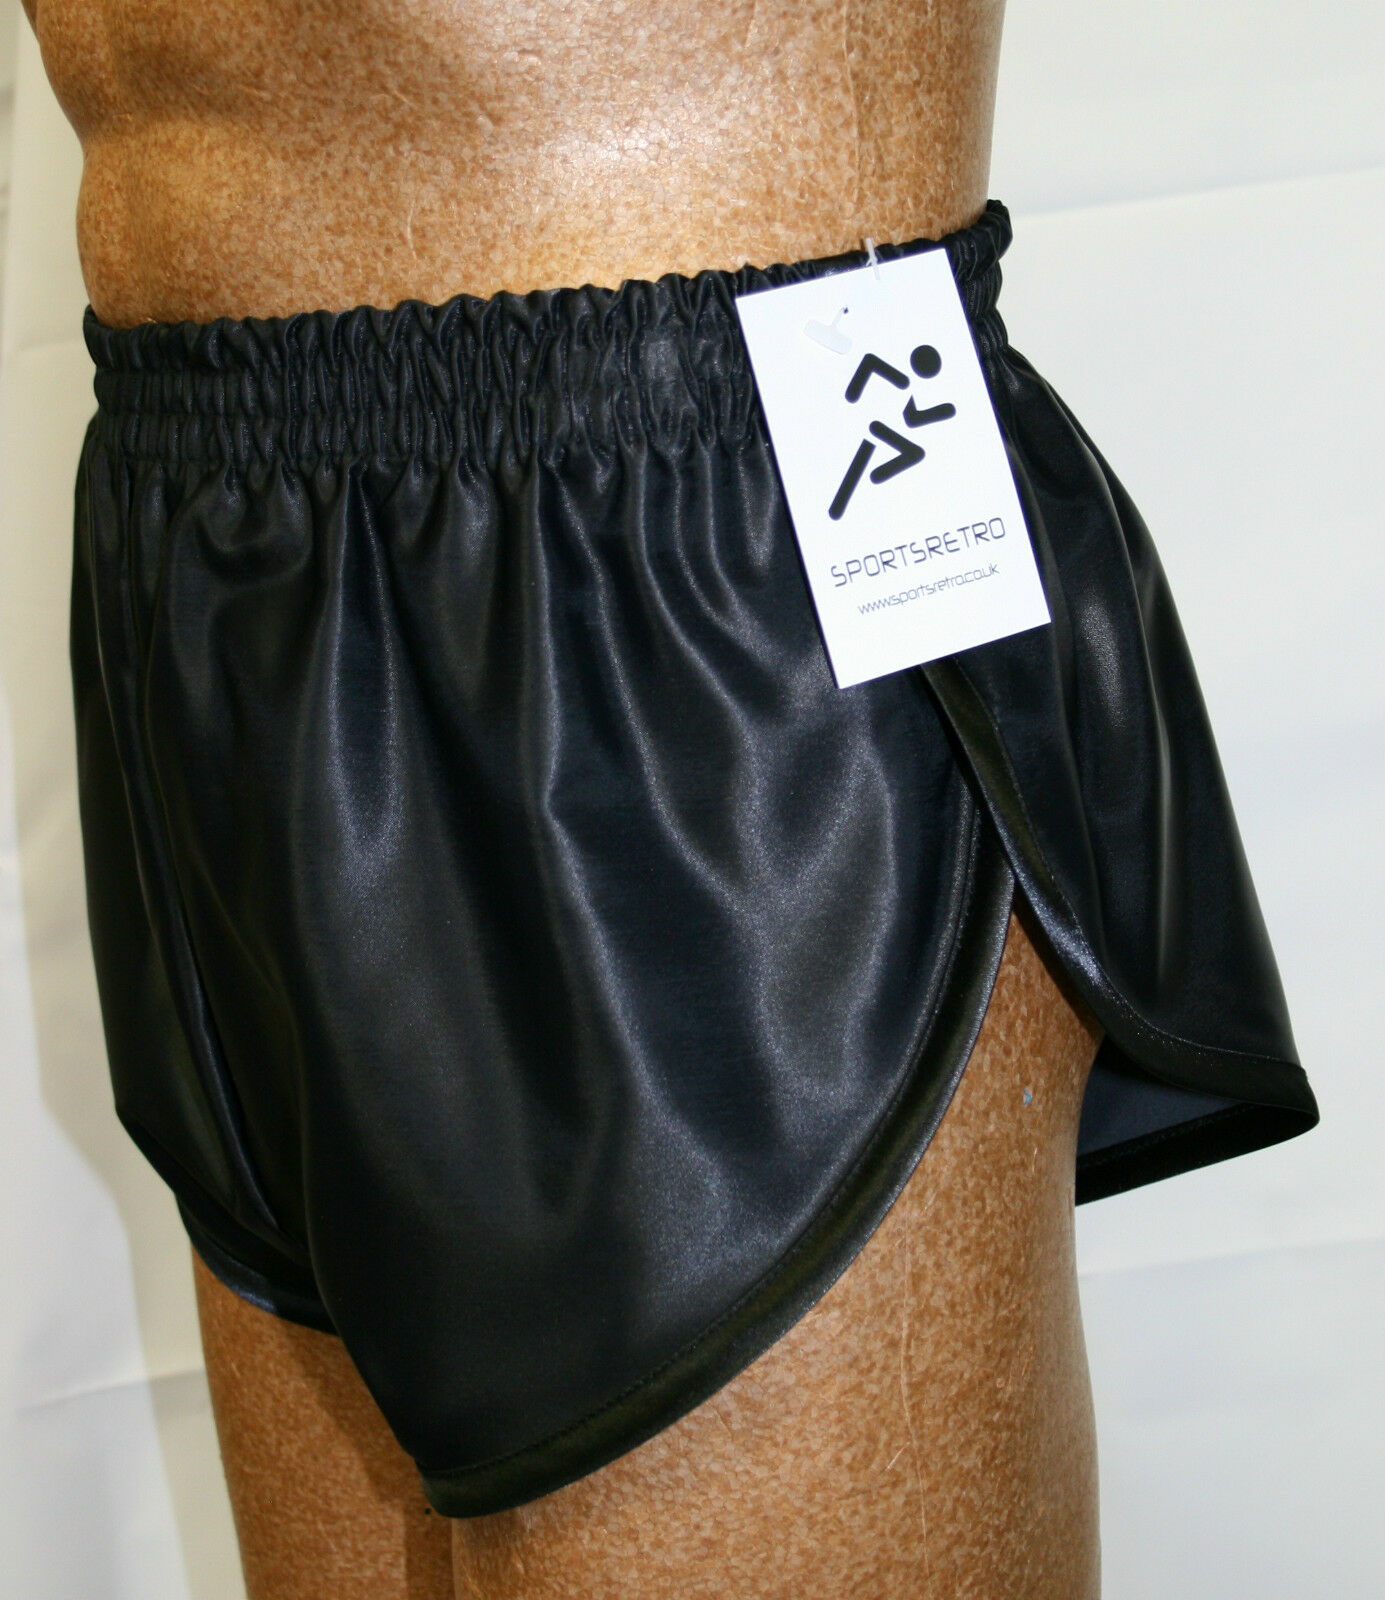 Retro Nylon Satin Sprinter Shorts S to 4XL, Plain Black